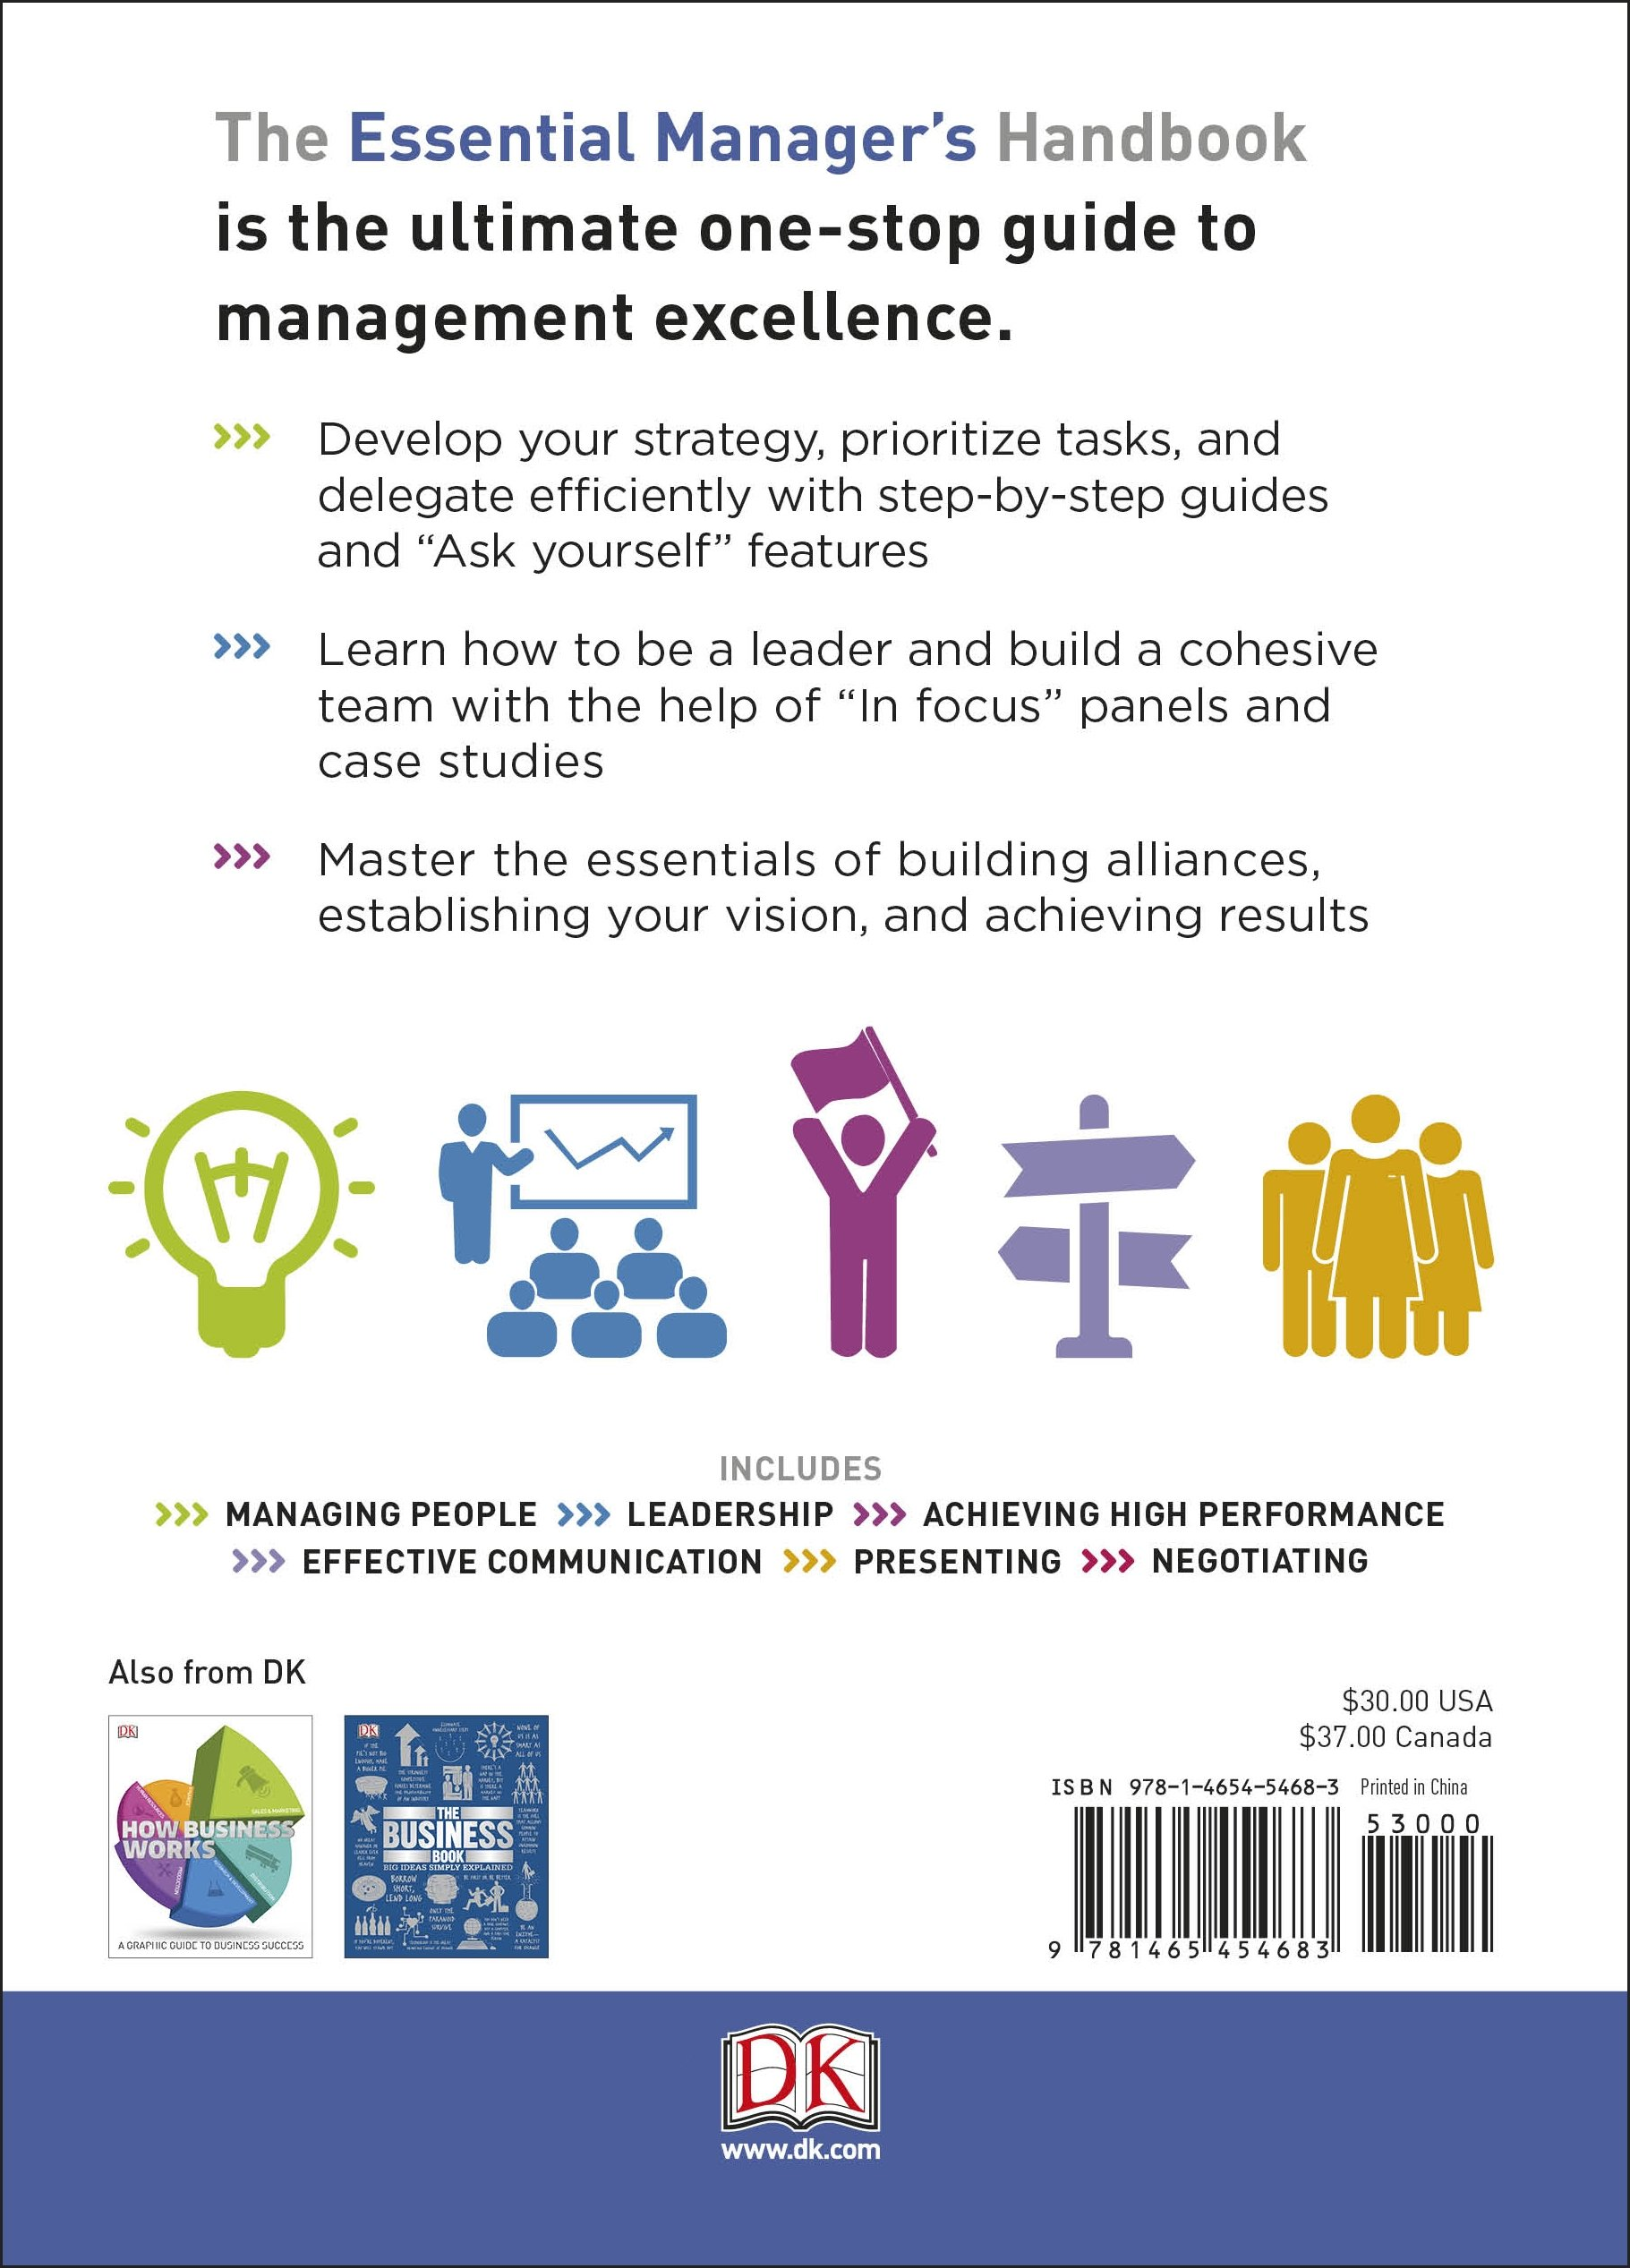 The Essential Manager's Handbook (DK Essential Managers): DK:  9781465454683: Amazon.com: Books